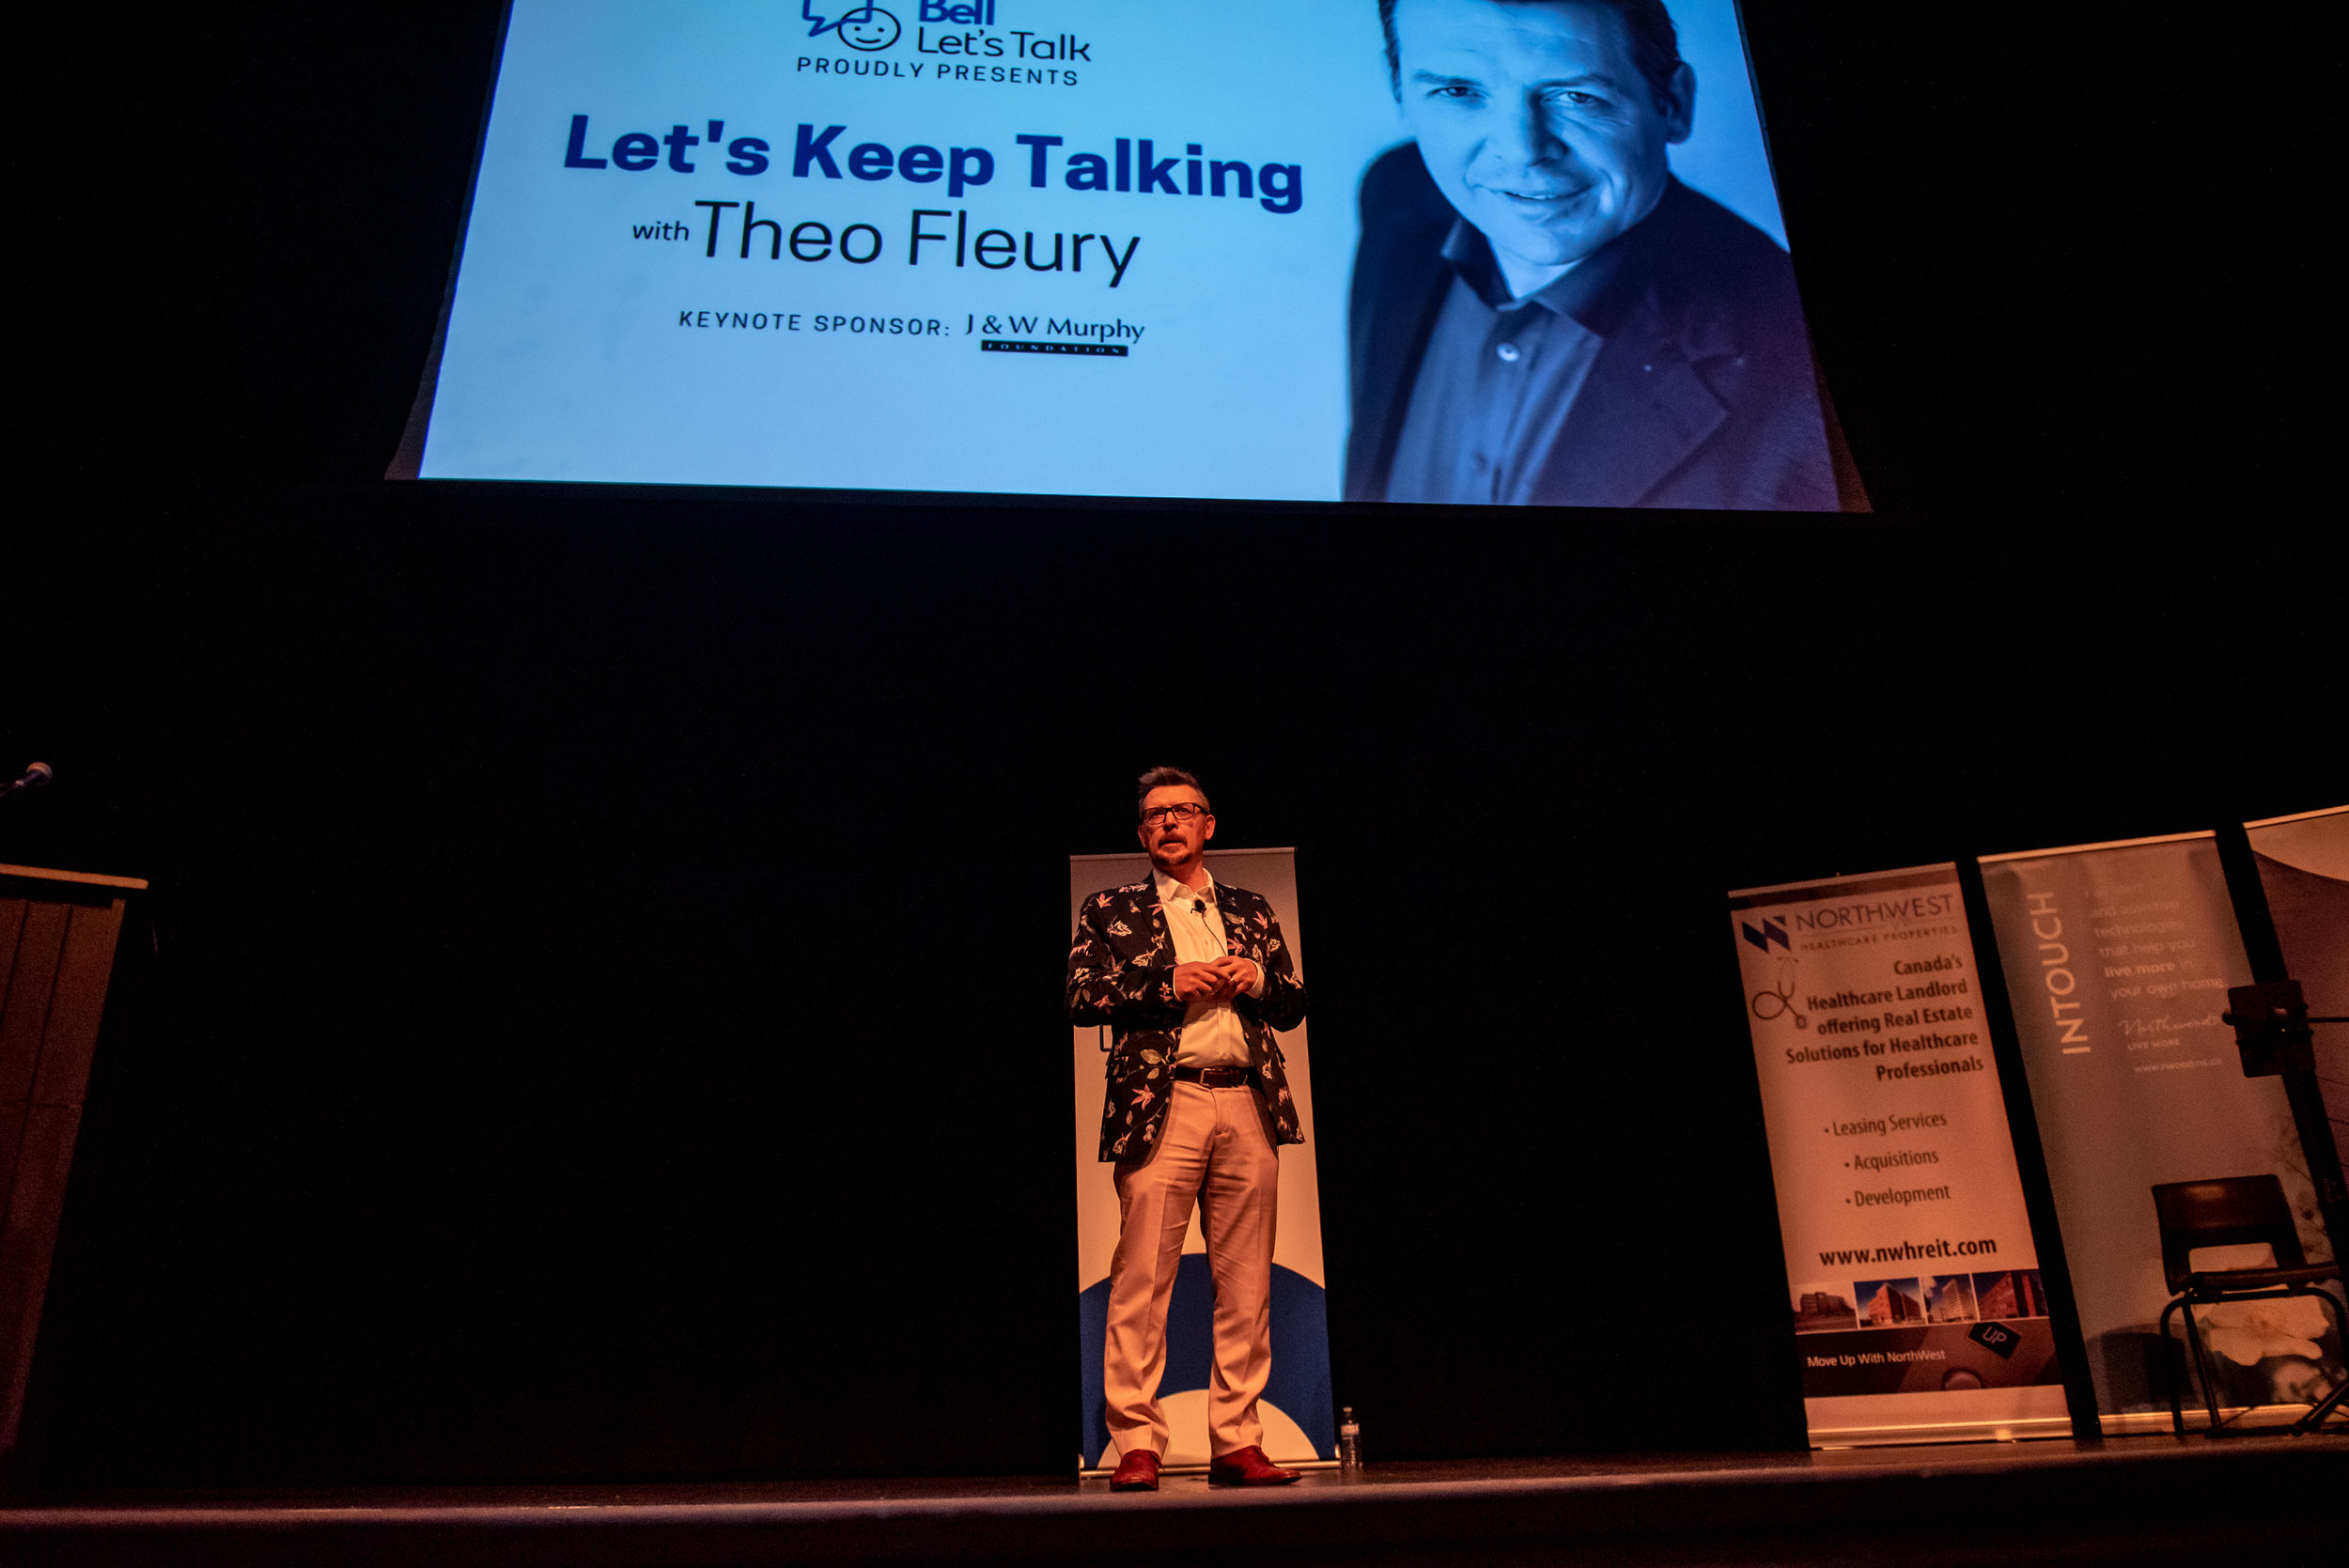 Keynote Speaker Theo Fleury shares his story of triumph over mental illness, trauma and addiction